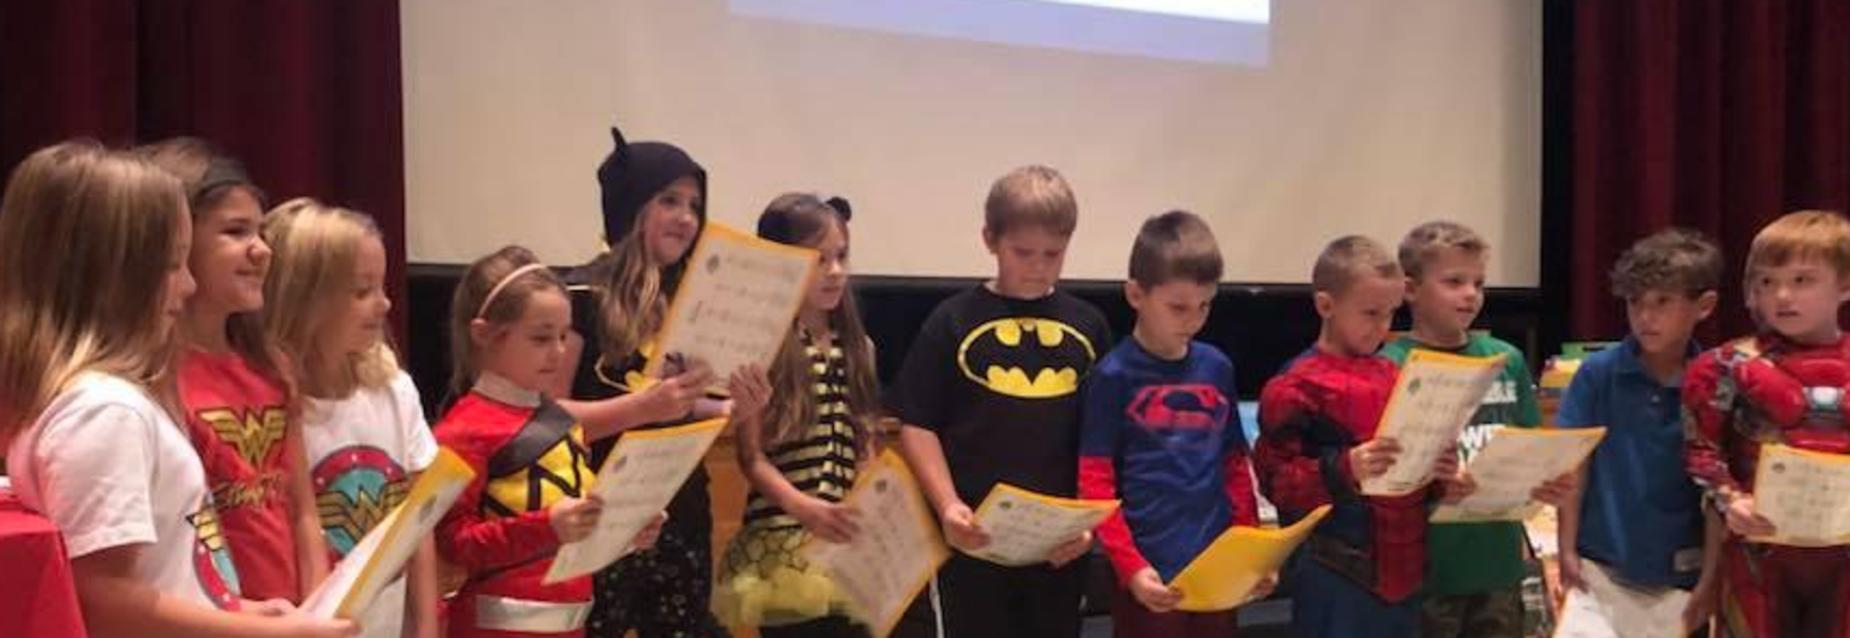 Students presenting on super heroes at an assembly